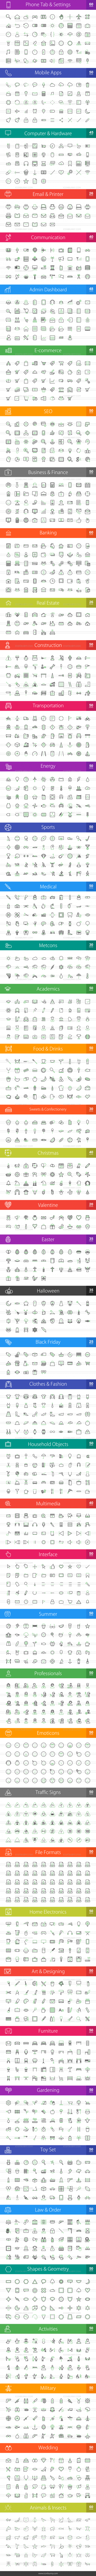 2070 Line Green & Black Icons Bundle - Preview - IconBunny